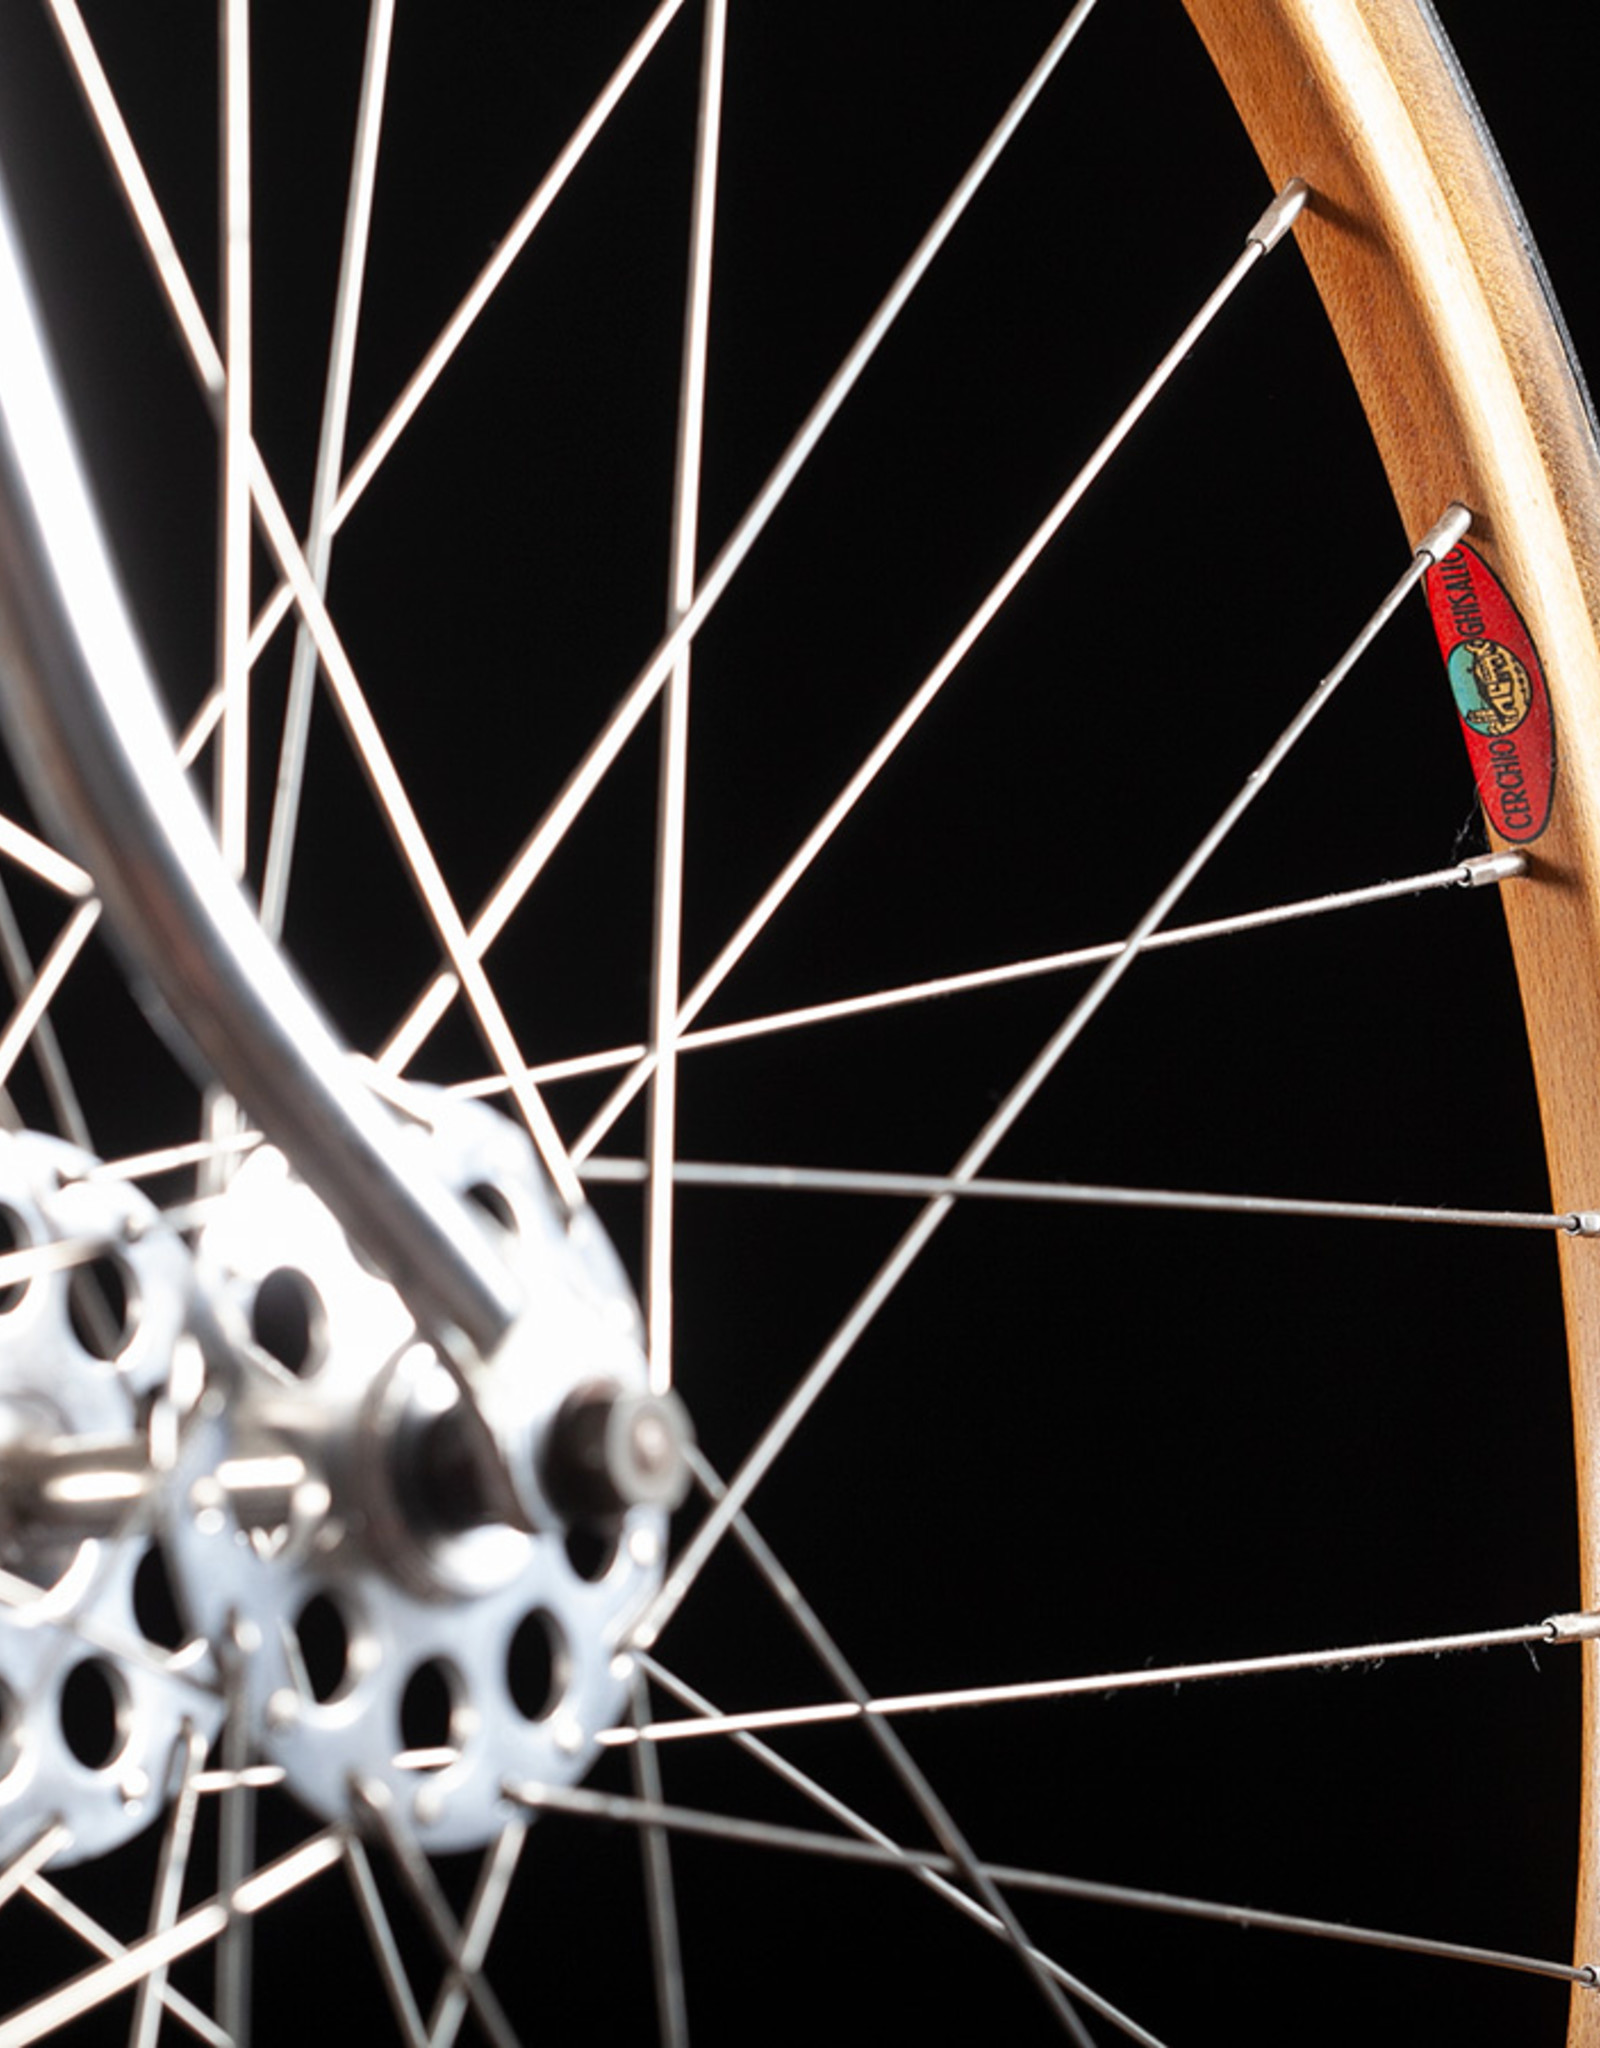 Rare Vintage 60's Atala track Bike with wooden rims rare Cinelli stem